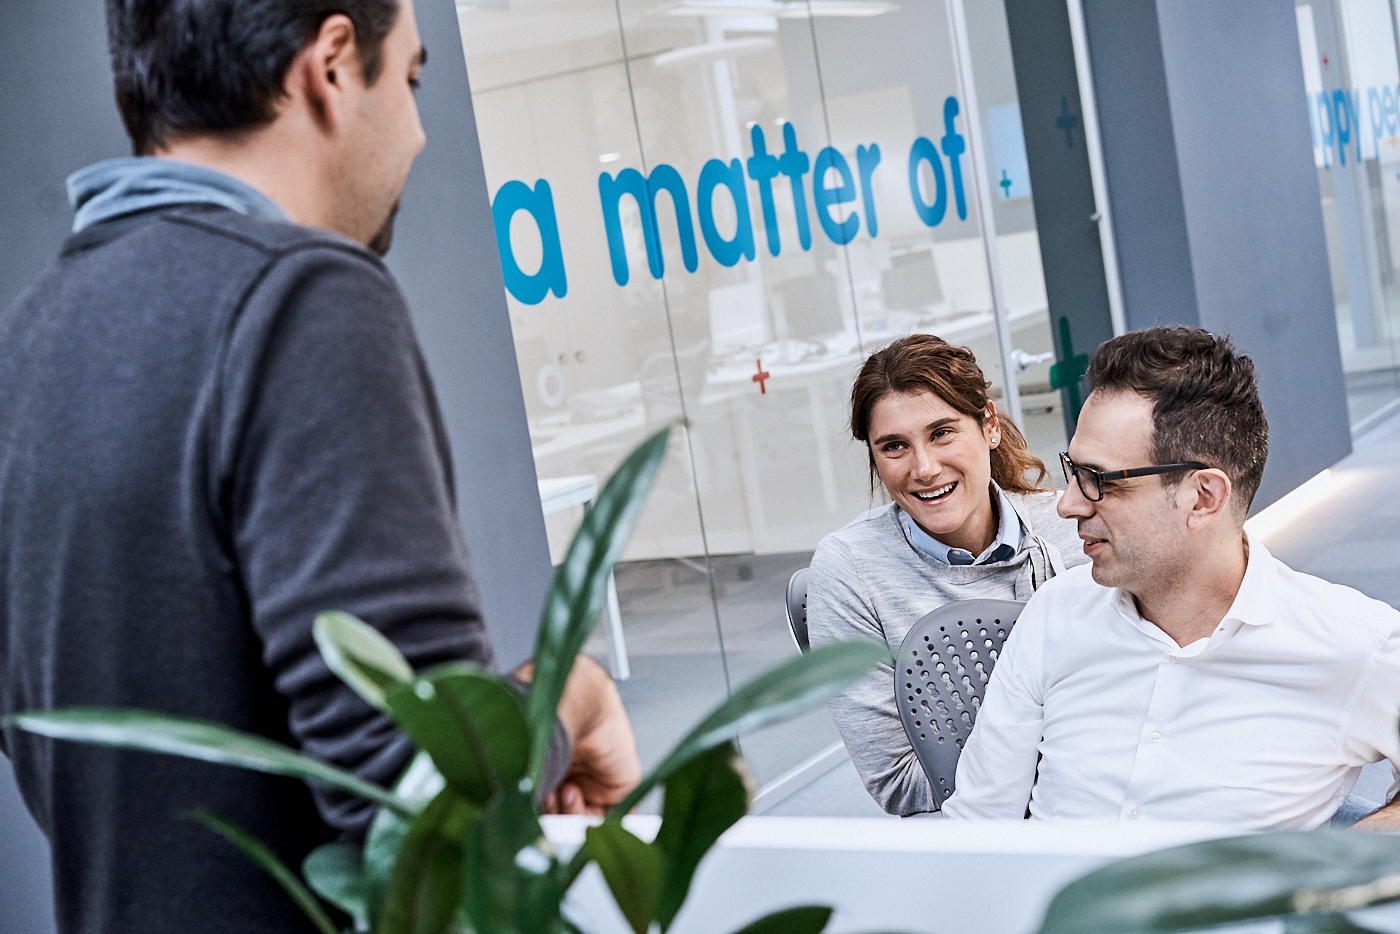 Corporate commissioned work for Imagicle.Imagicle, born in 2010 is an ISV offering an all in one suite of must-have applications empowering Unified Communications & Collaboration for large enterprises and small-medium businesses for desktop and mobile clients, IP Phones, browsers and mobile devices (iOS-Android Smartphones & Tablets).